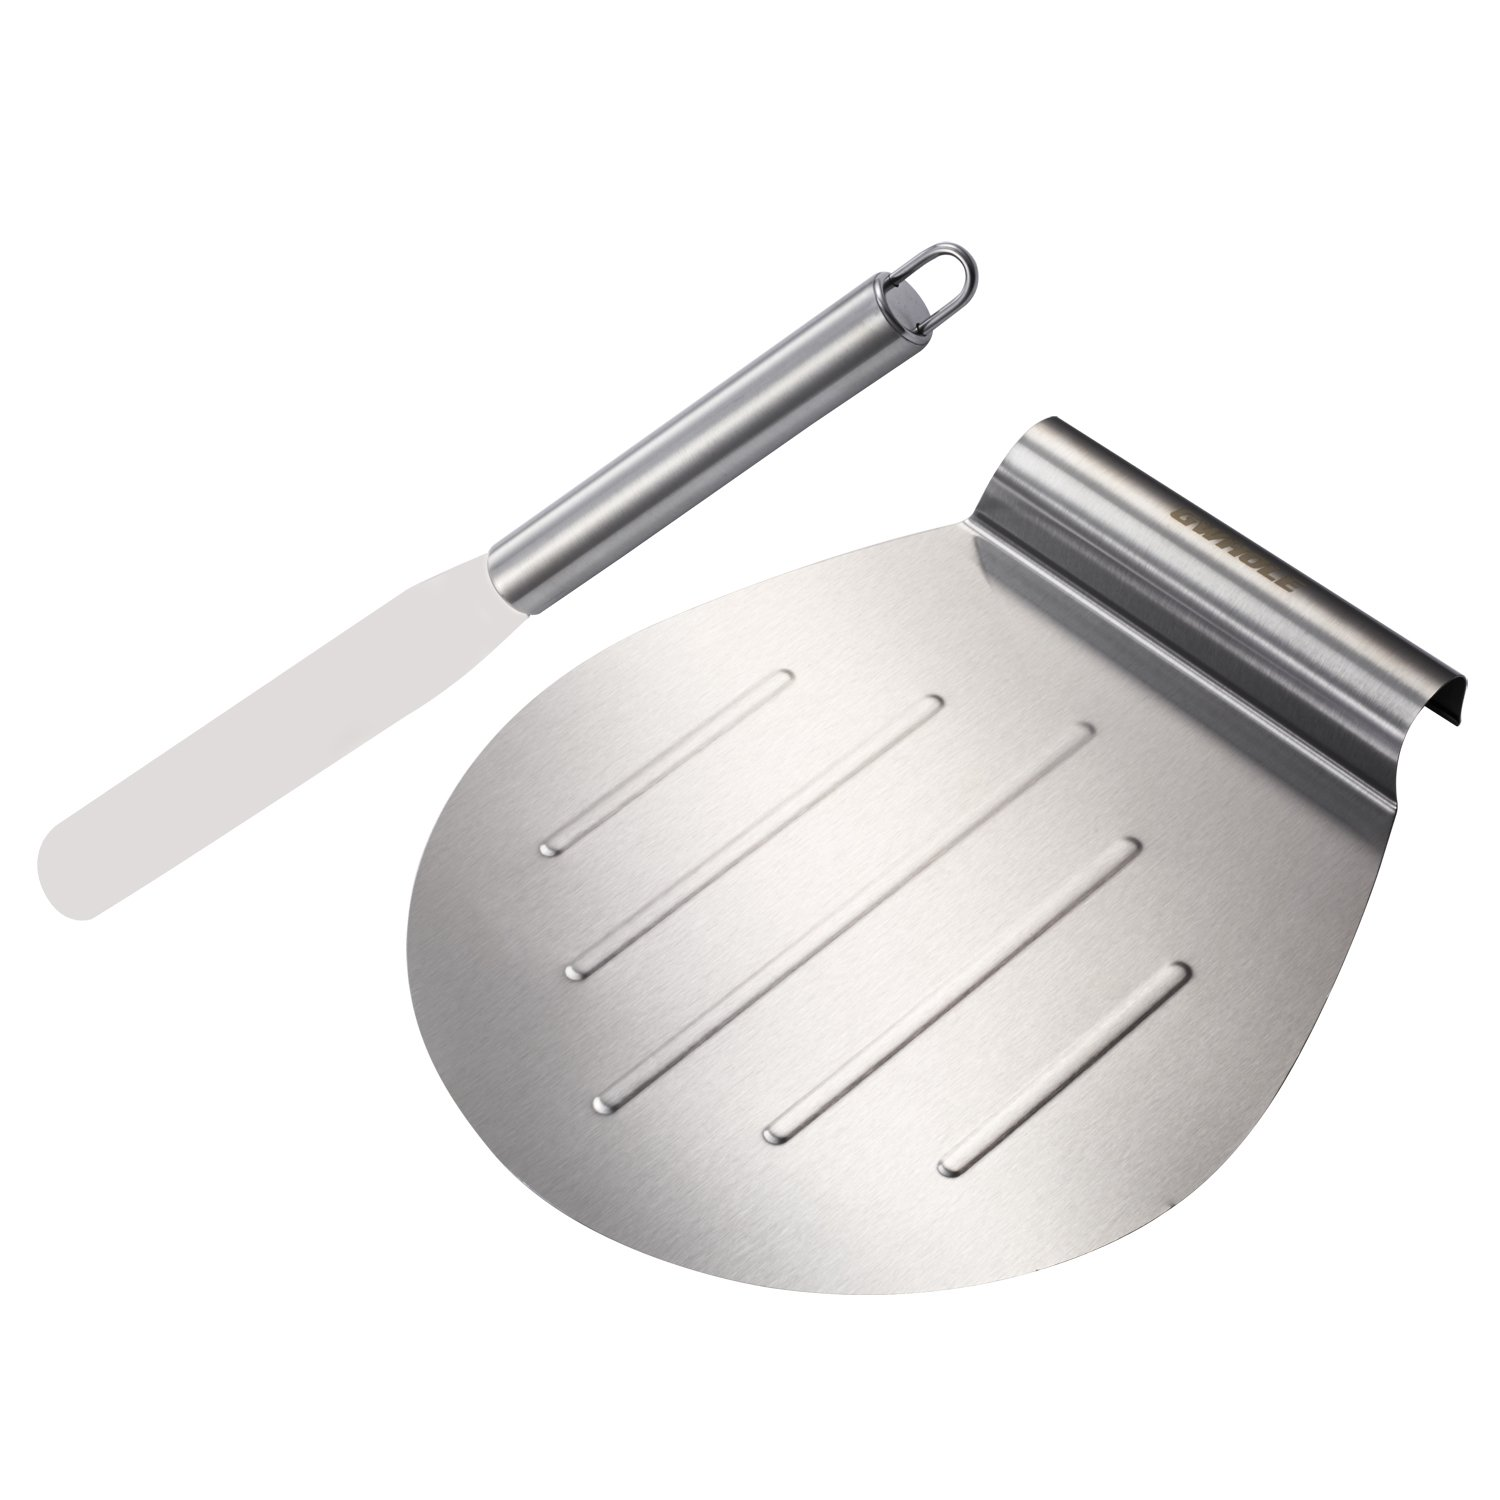 GWHOLE Stainless Steel 11'' Pizza and Cake Lifter